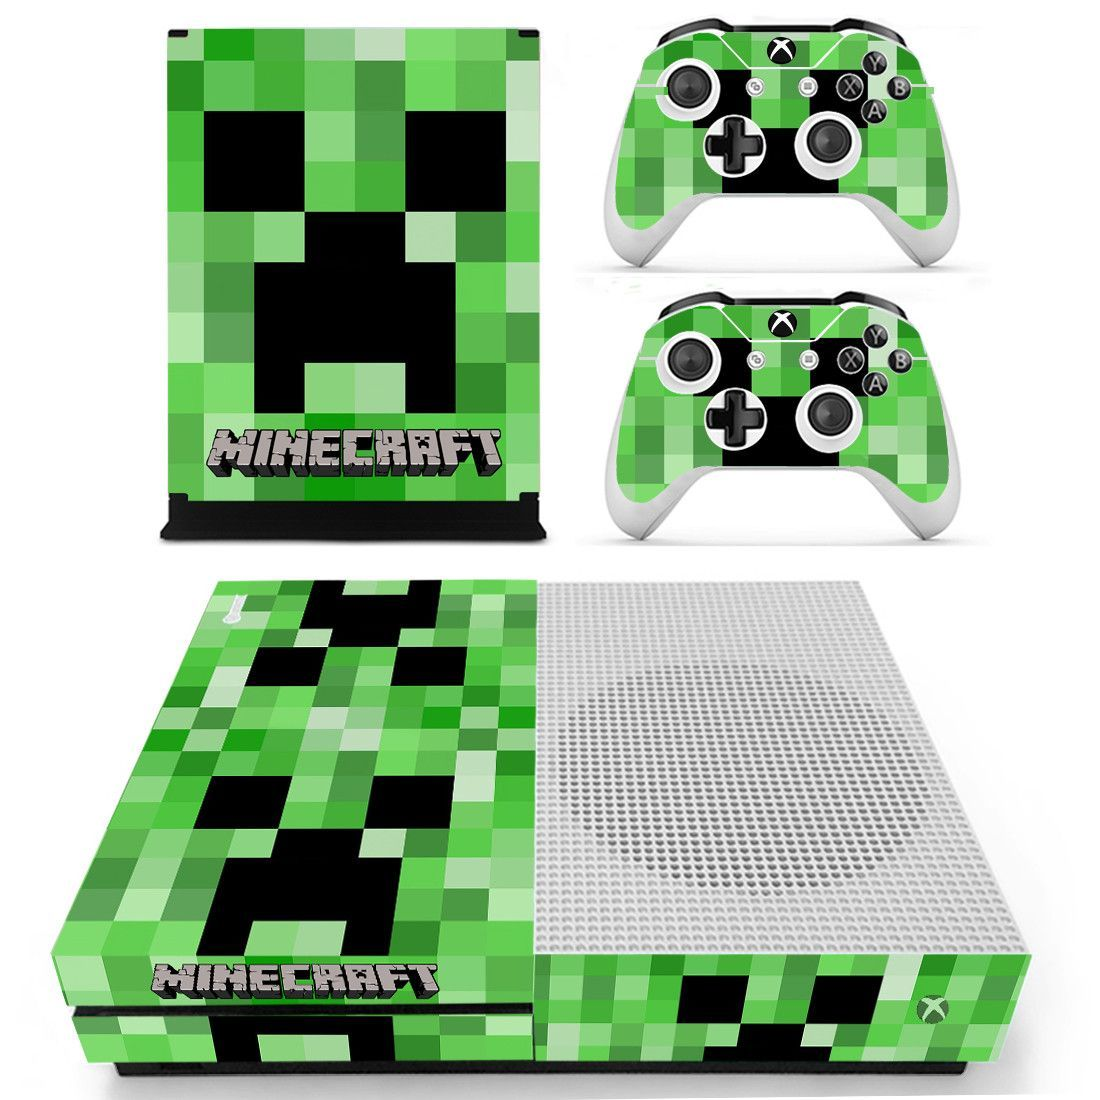 c87512054fd36bceae2e24463ed55245 - How To Get A Skin On Minecraft Xbox One